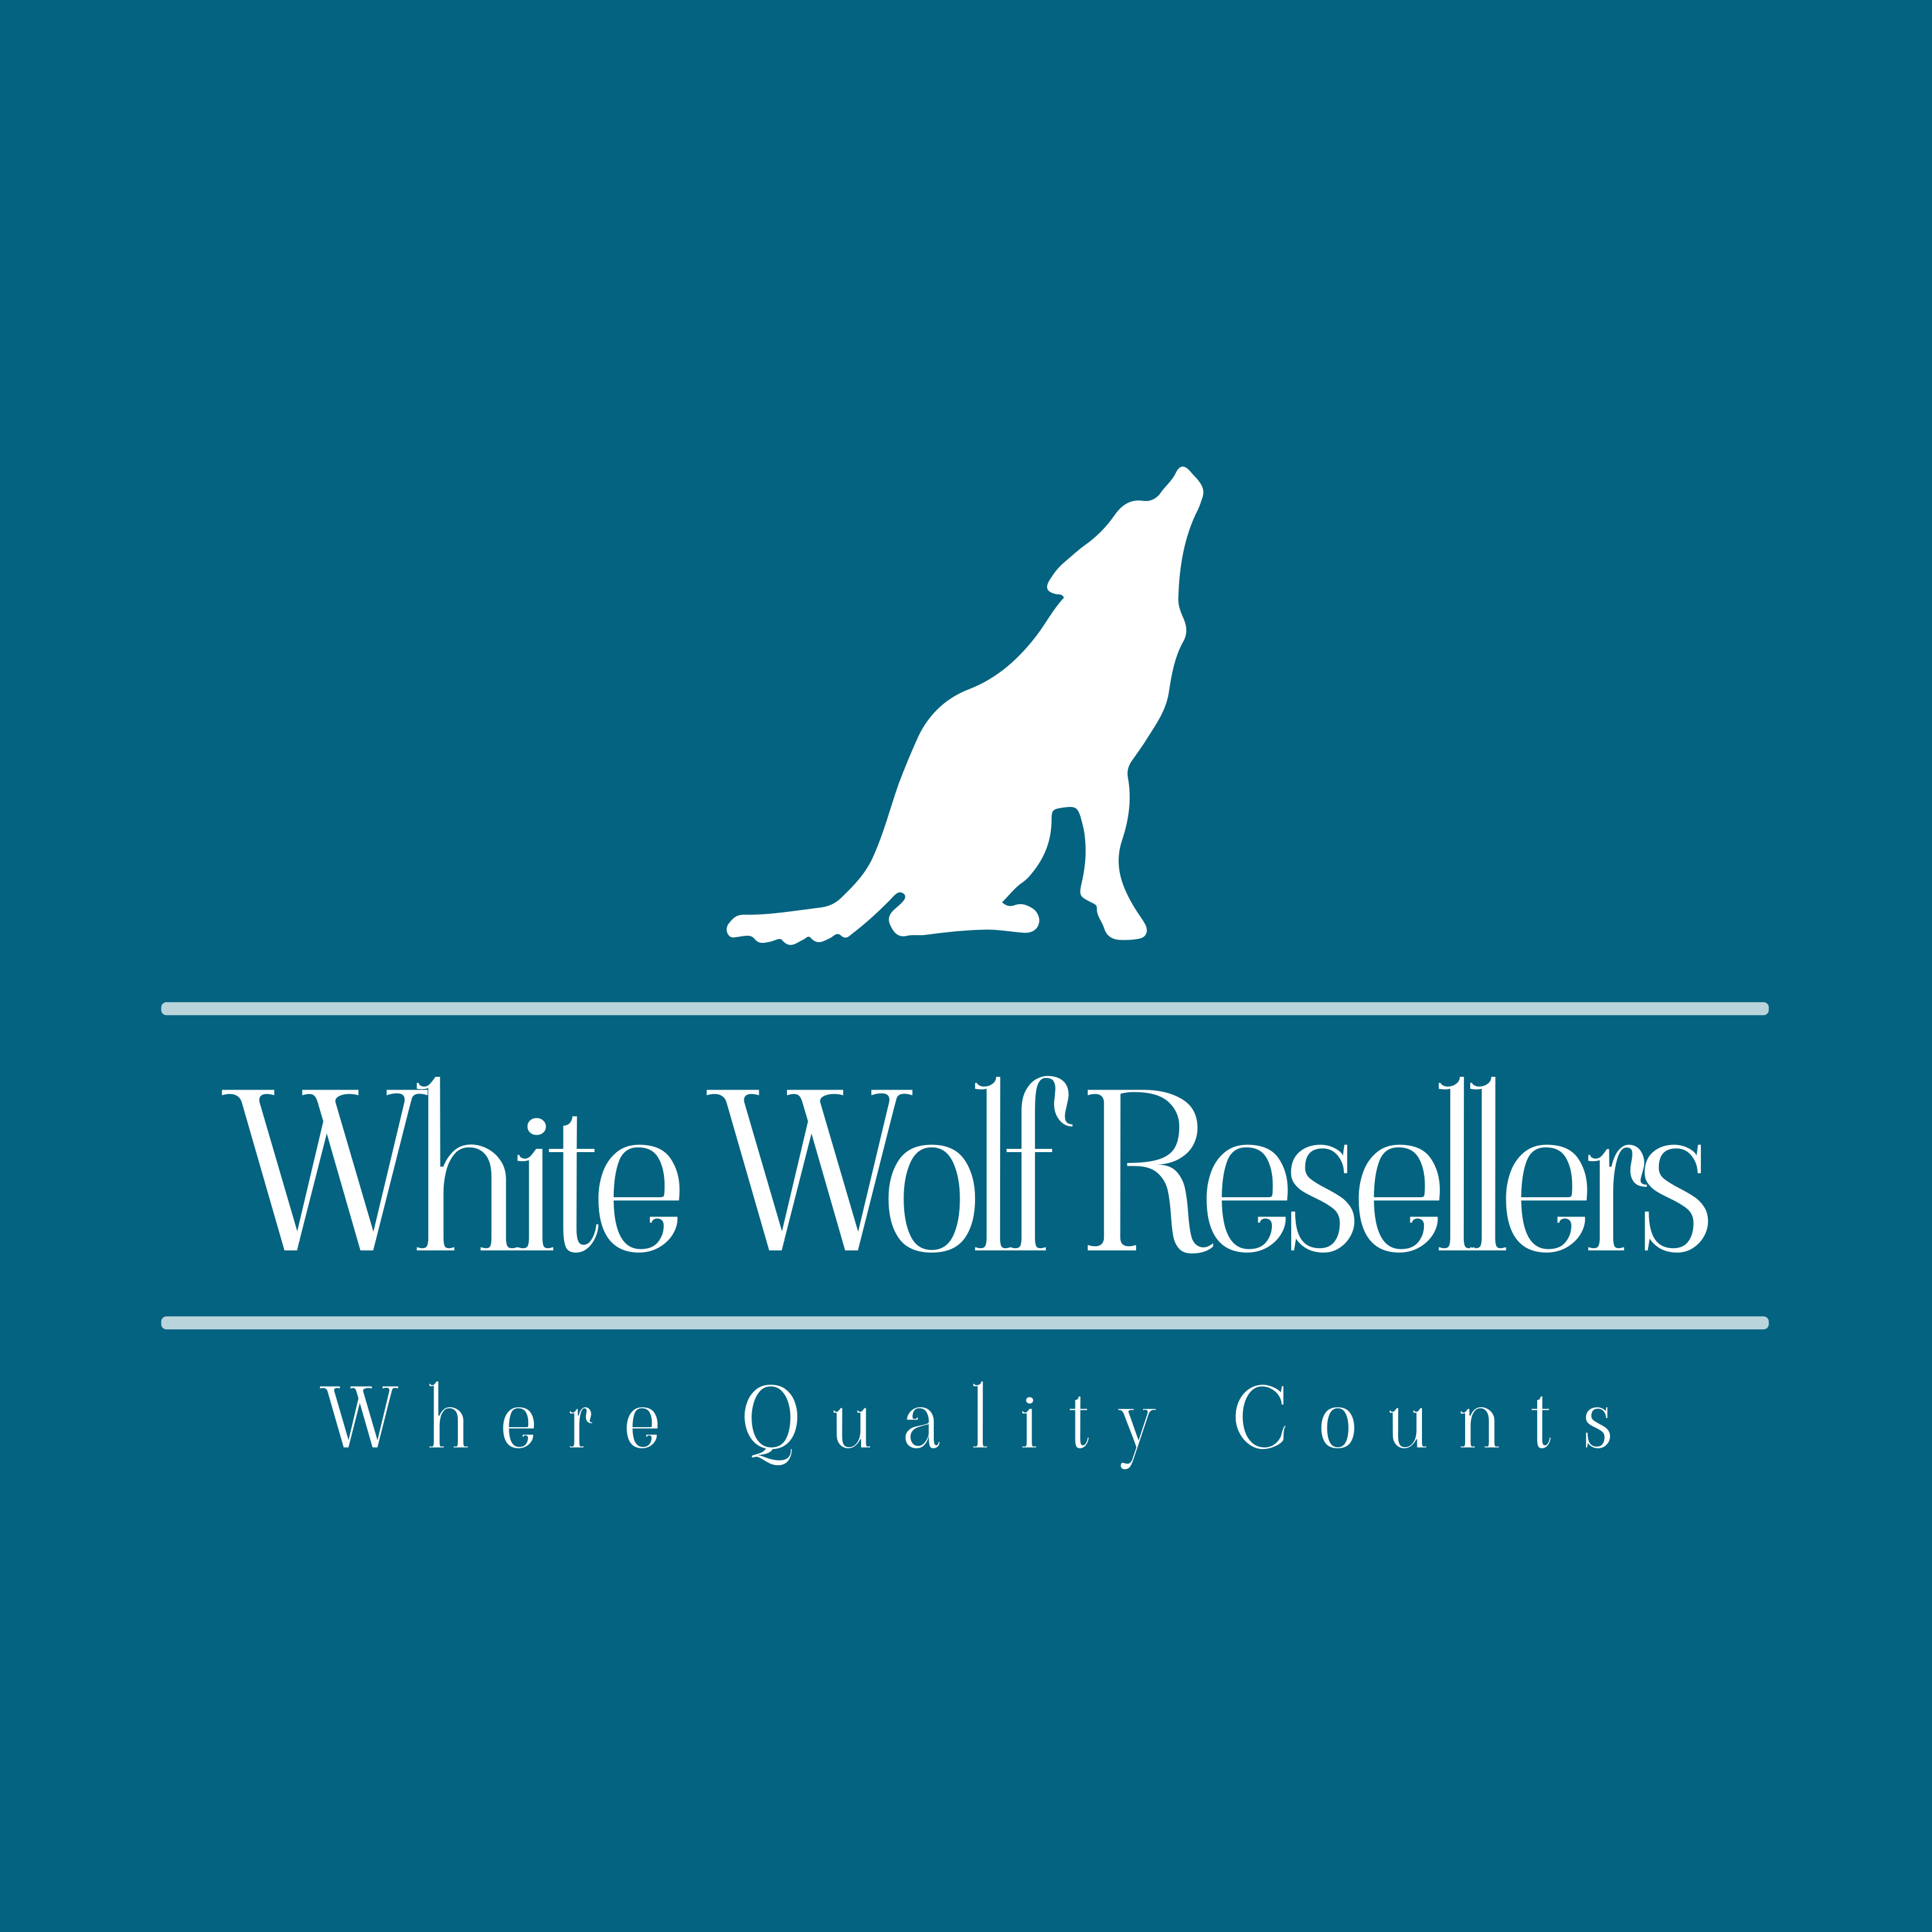 White Wolf Resellers